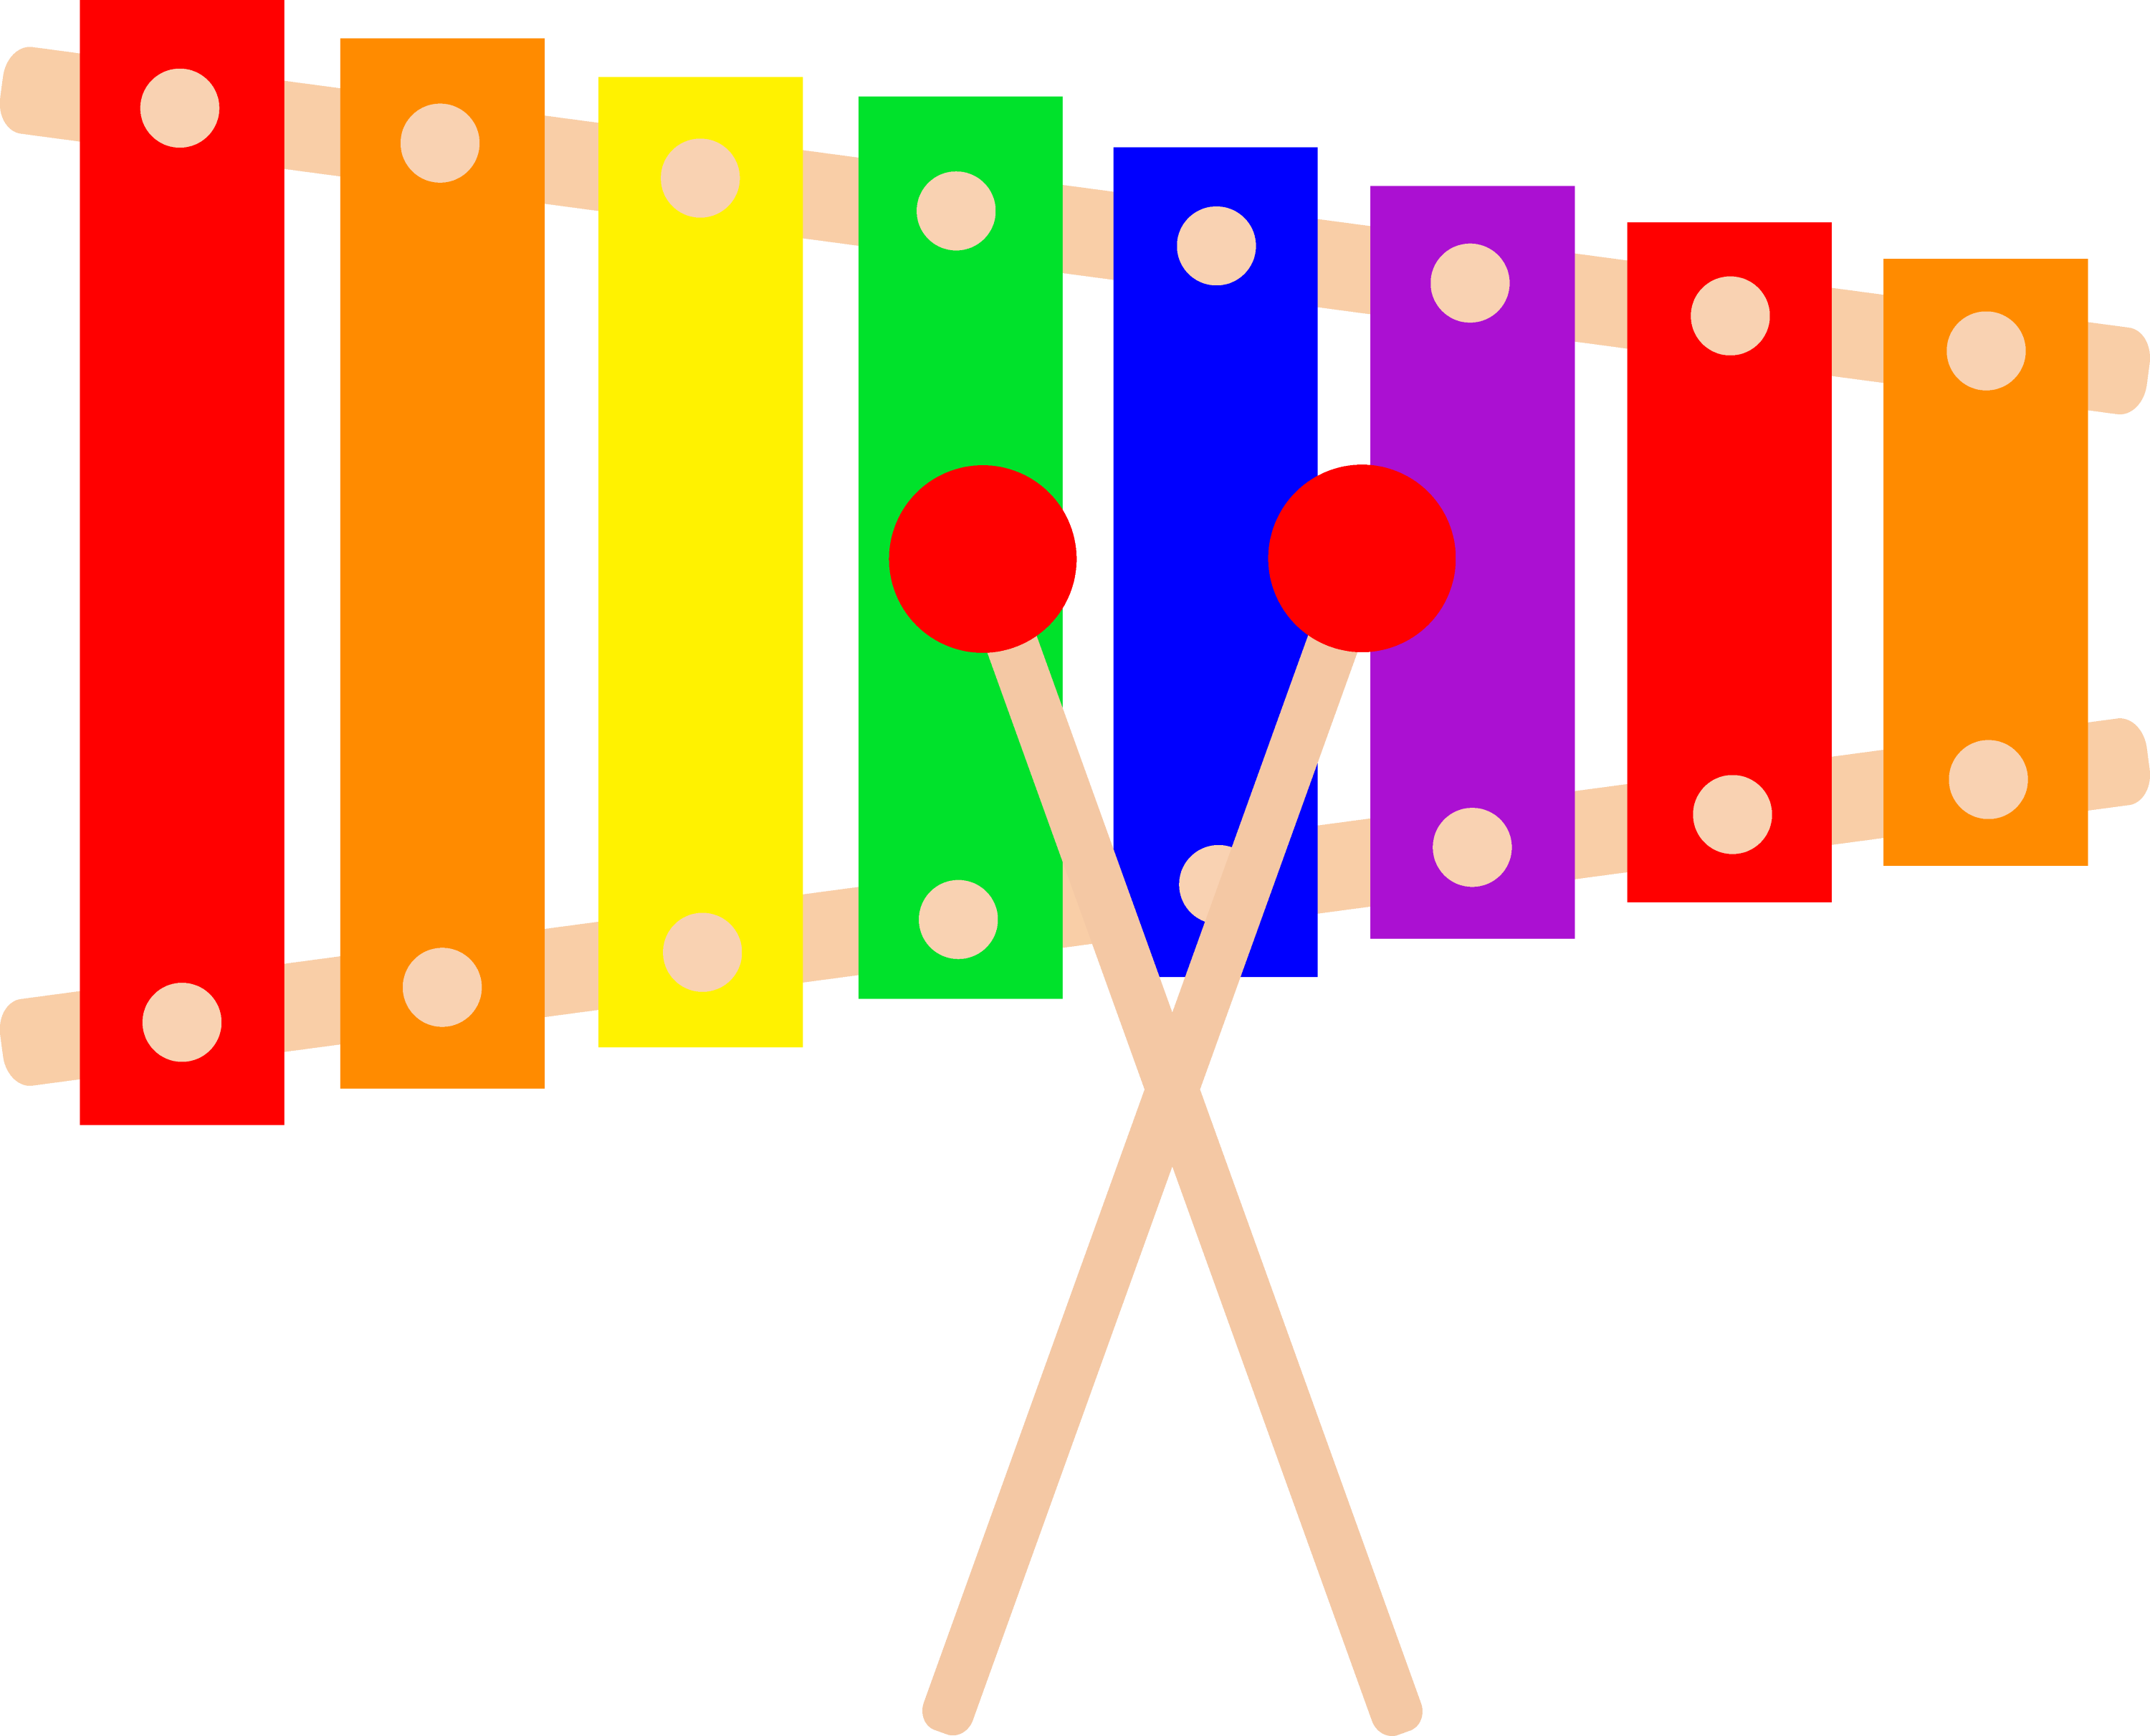 Colorful Xylophone Design - Free Clip Art for Xylophone Drawing For Kids  584dqh